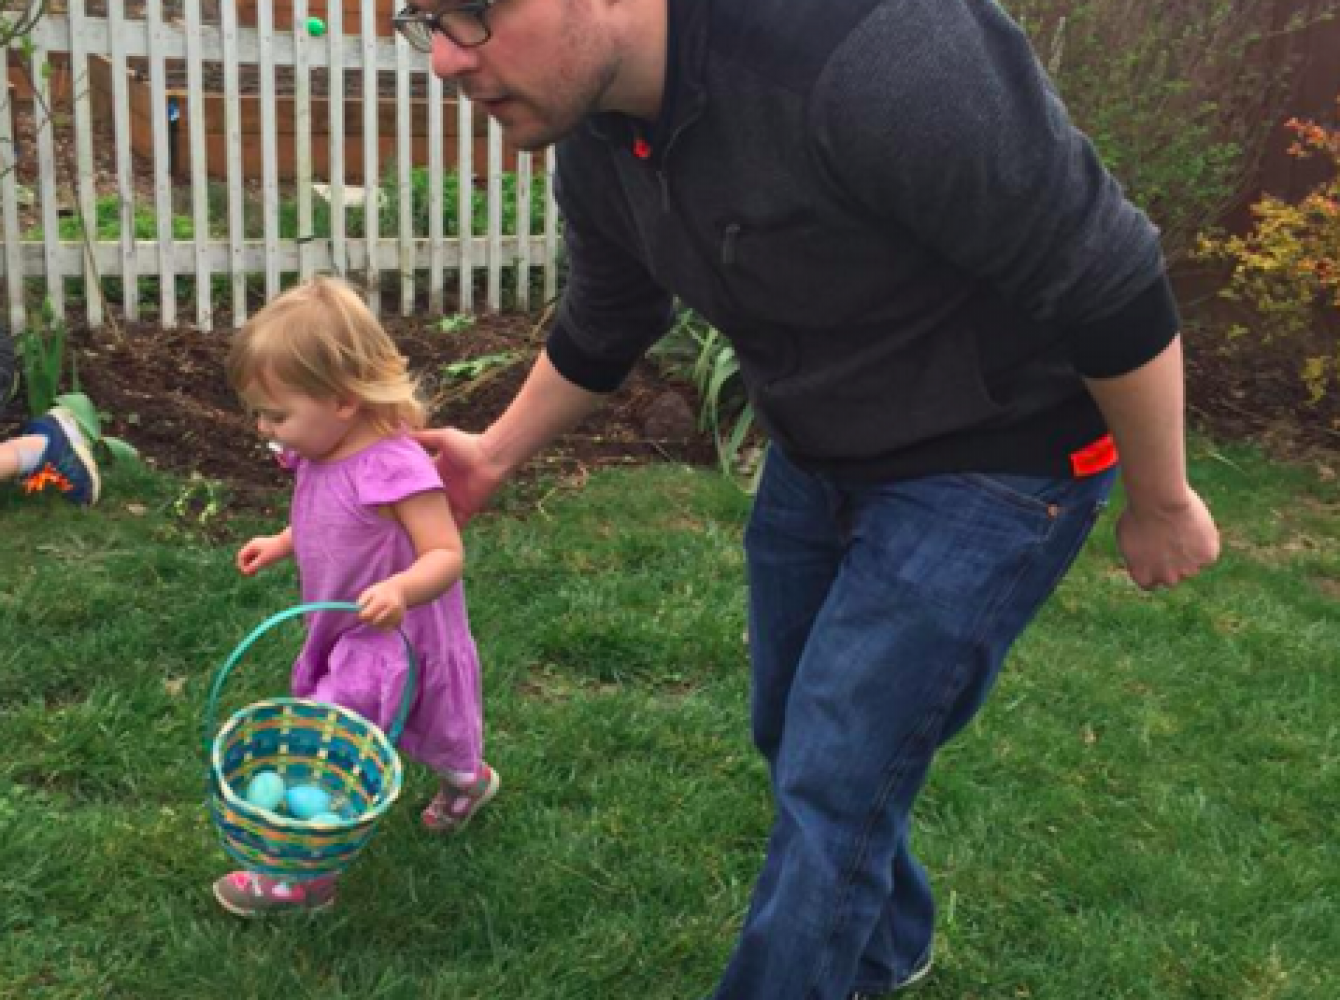 18 THINGS NO ONE TOLD ME ABOUT PARENTING